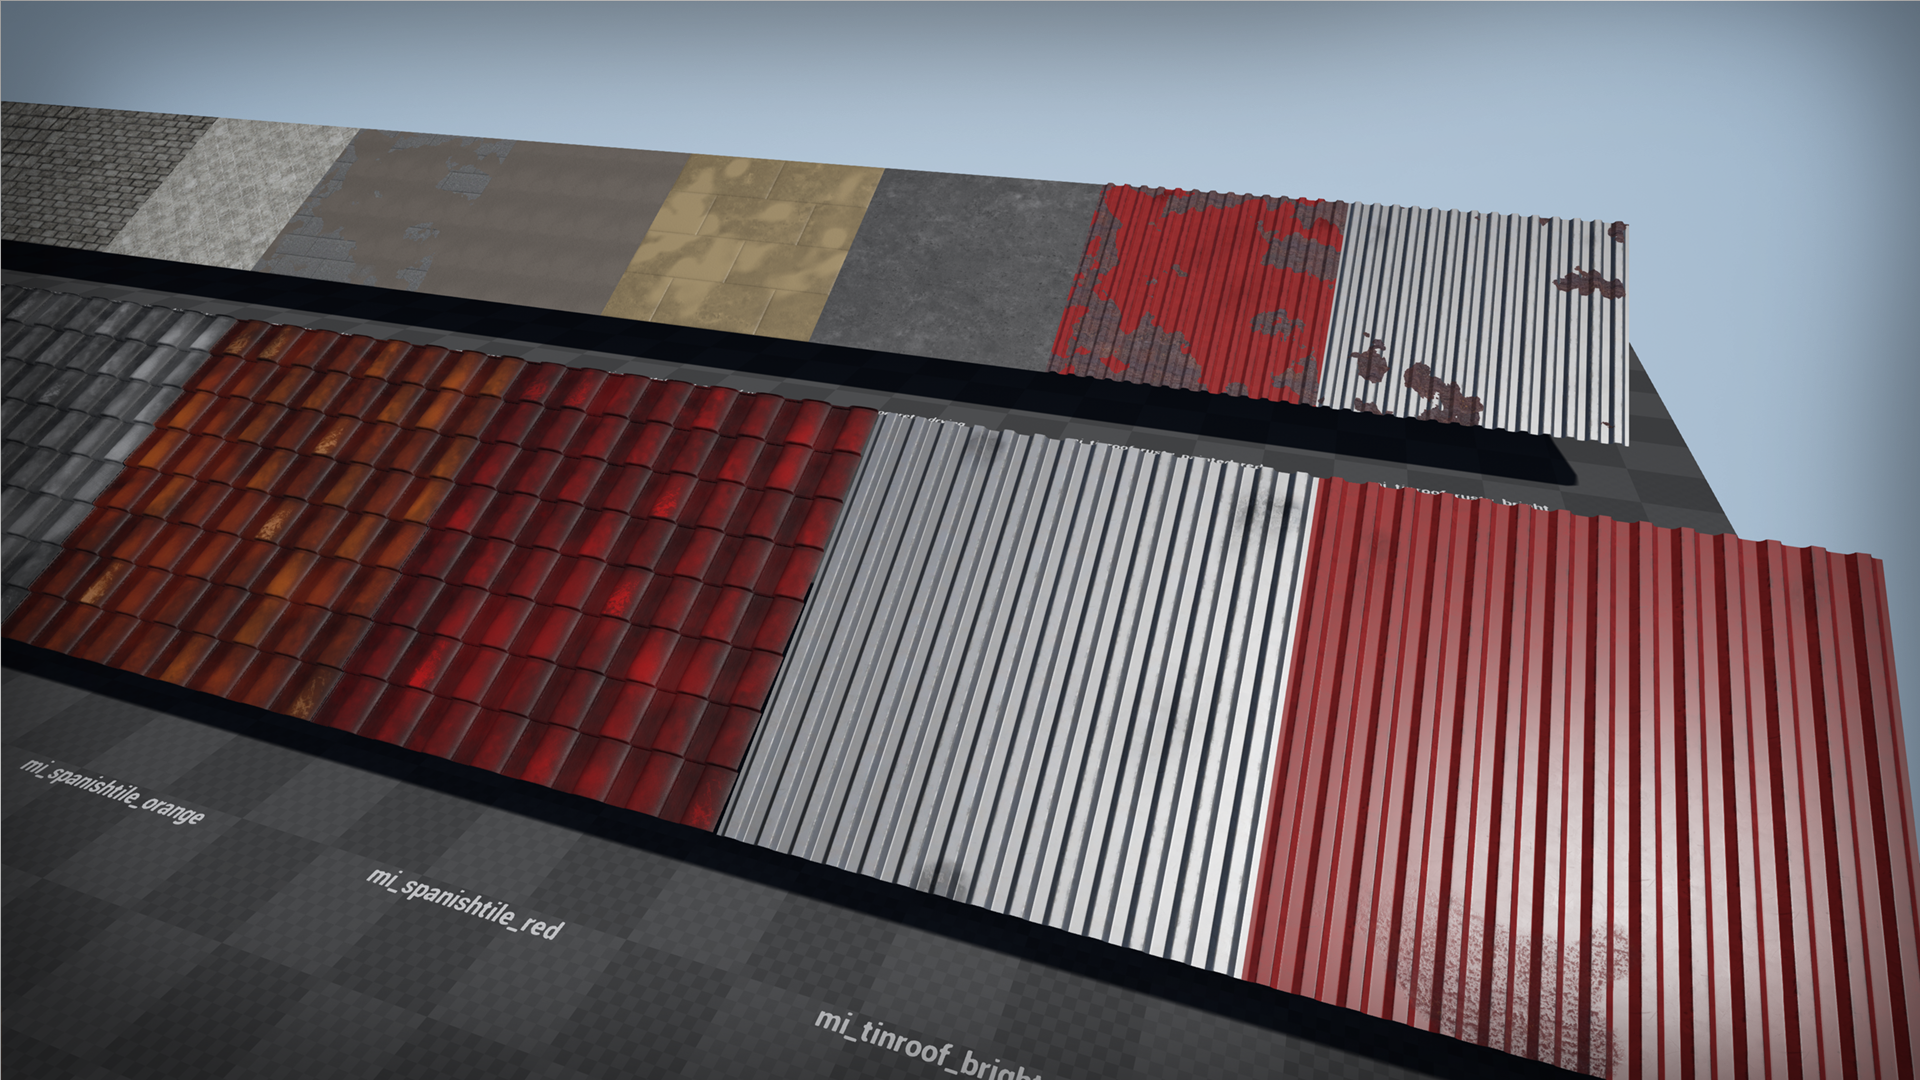 Necro's Utility Material Pack by Necrophob30 in Materials - UE4